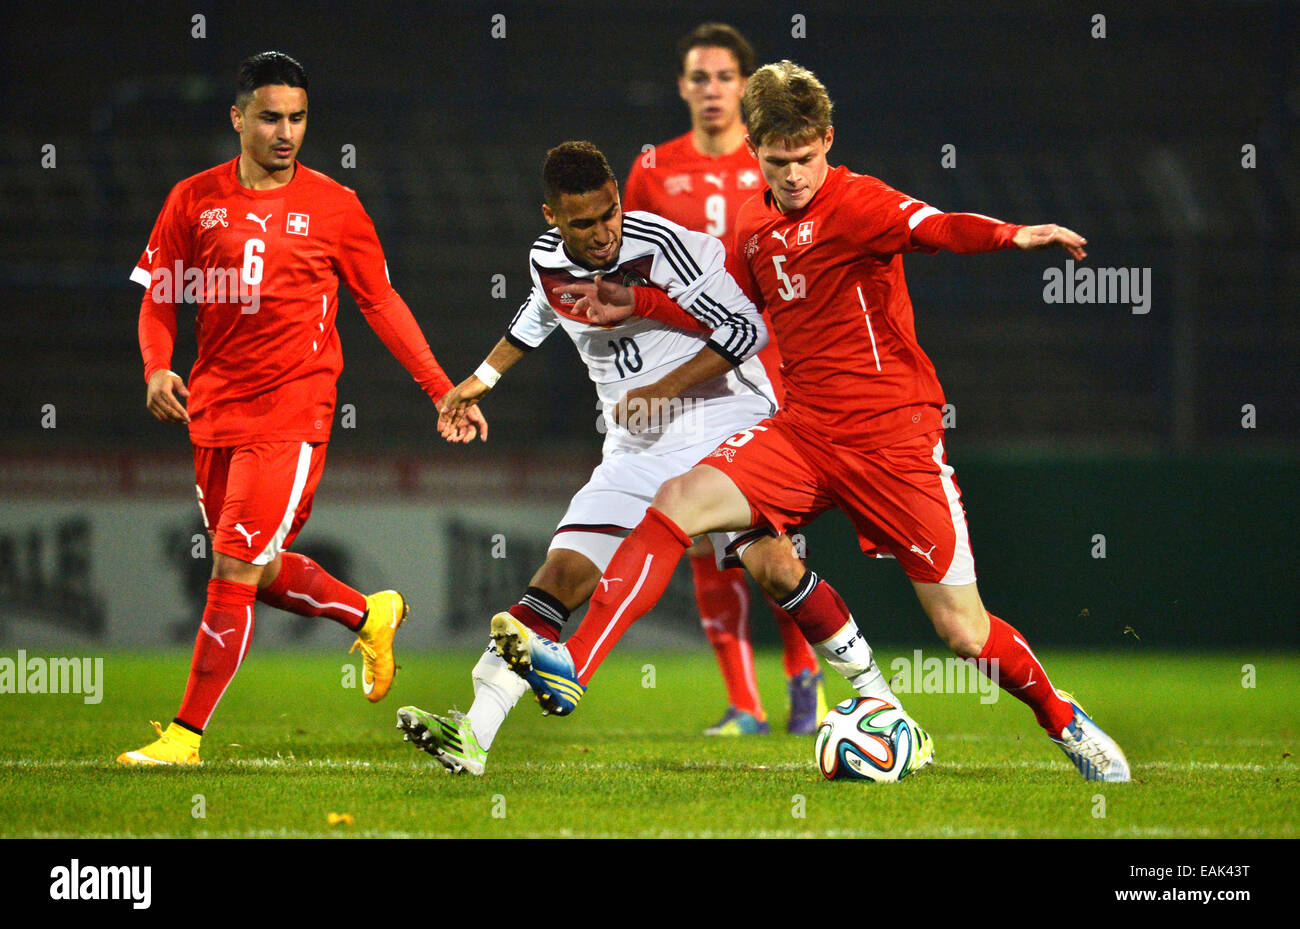 Germany's Hany Mukthar (C) and Switzerland's Marco Thaler vie for the ball during the U-20 international - Stock Image